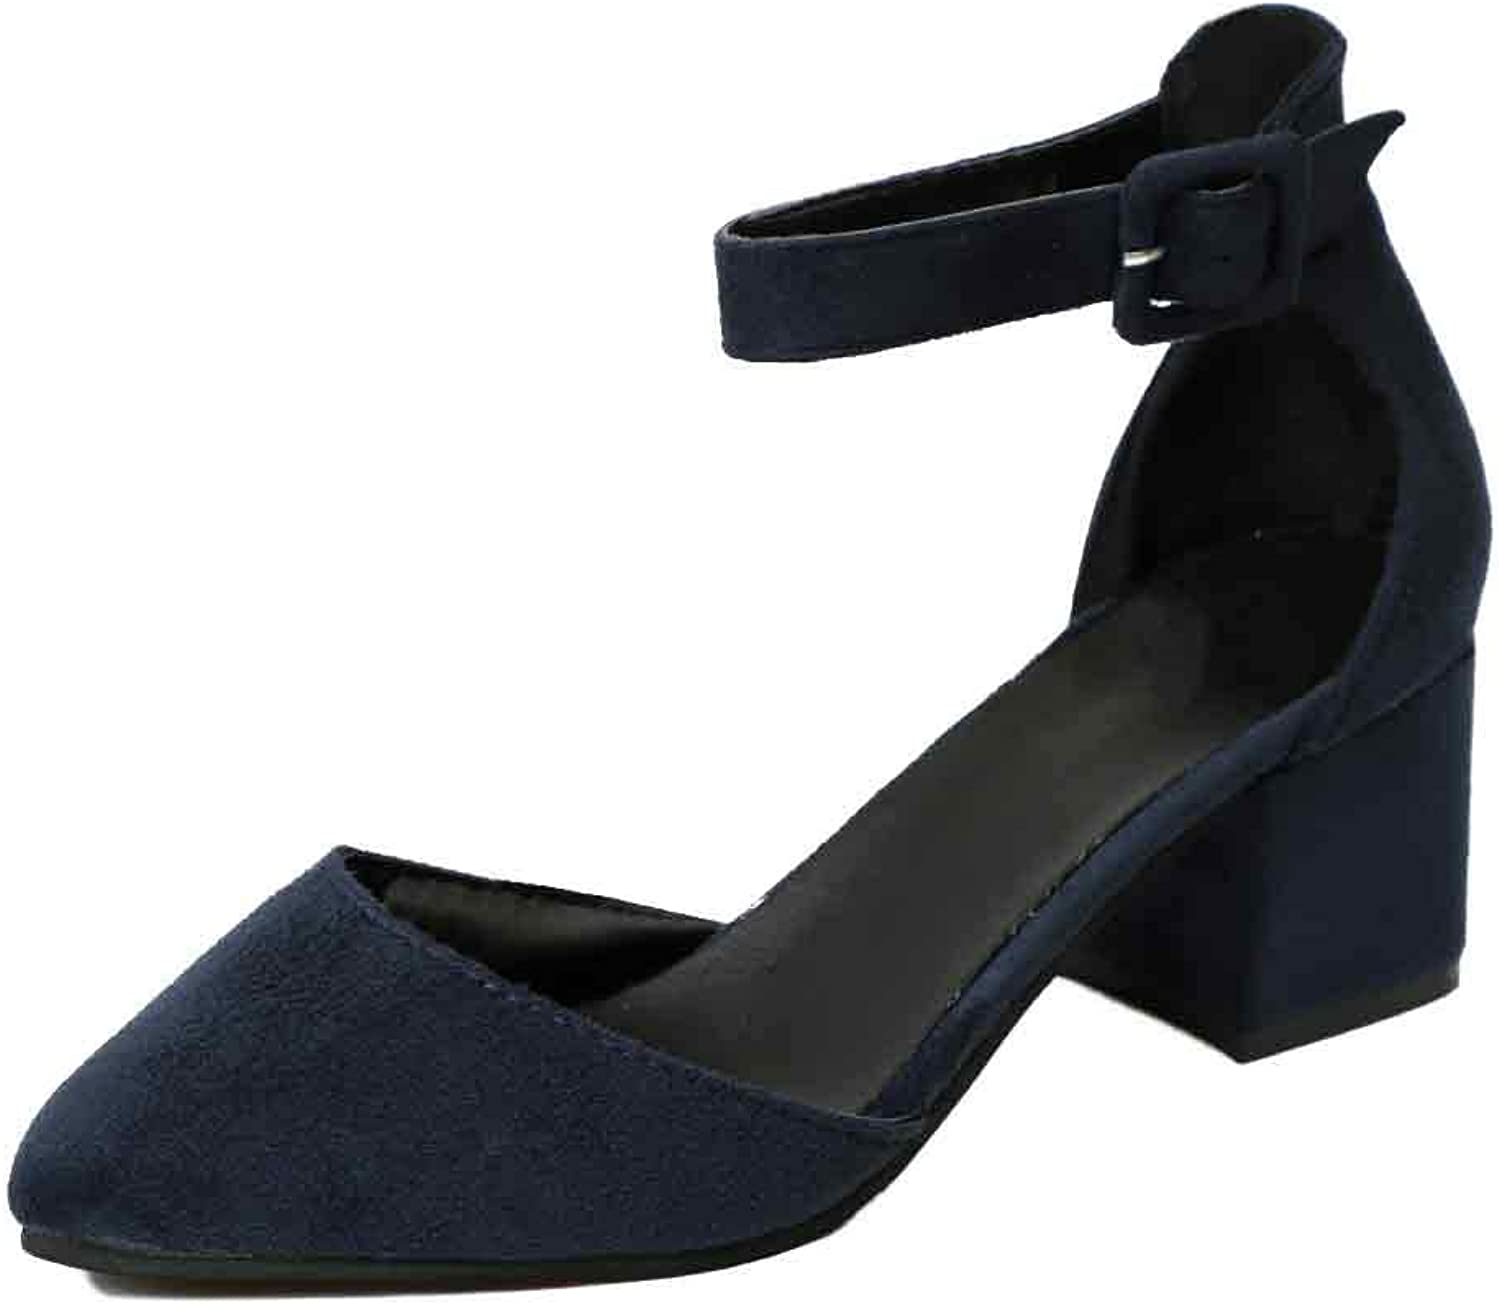 Huicai Ladies Solid color Ankle Strap Buckle Pointed Toe Low Heeled shoes